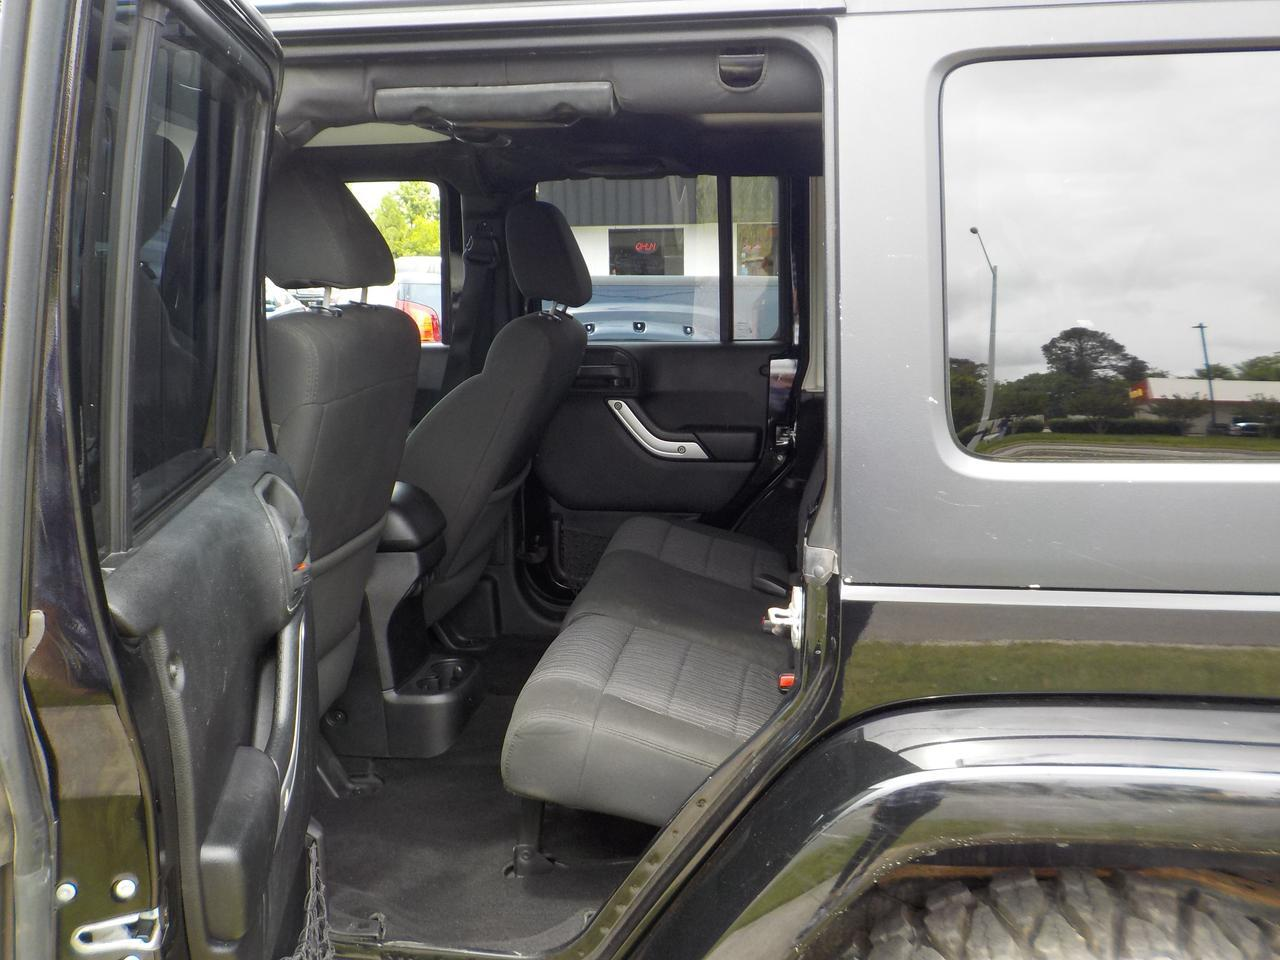 2012 JEEP WRANGLER SAHARA UNLIMITED 6-SPEED MANUAL 4X4, HARD TOP, ROOF RACKS, RUNNING BOARDS, TOW, DVD, NAVIAGTION! Virginia Beach VA